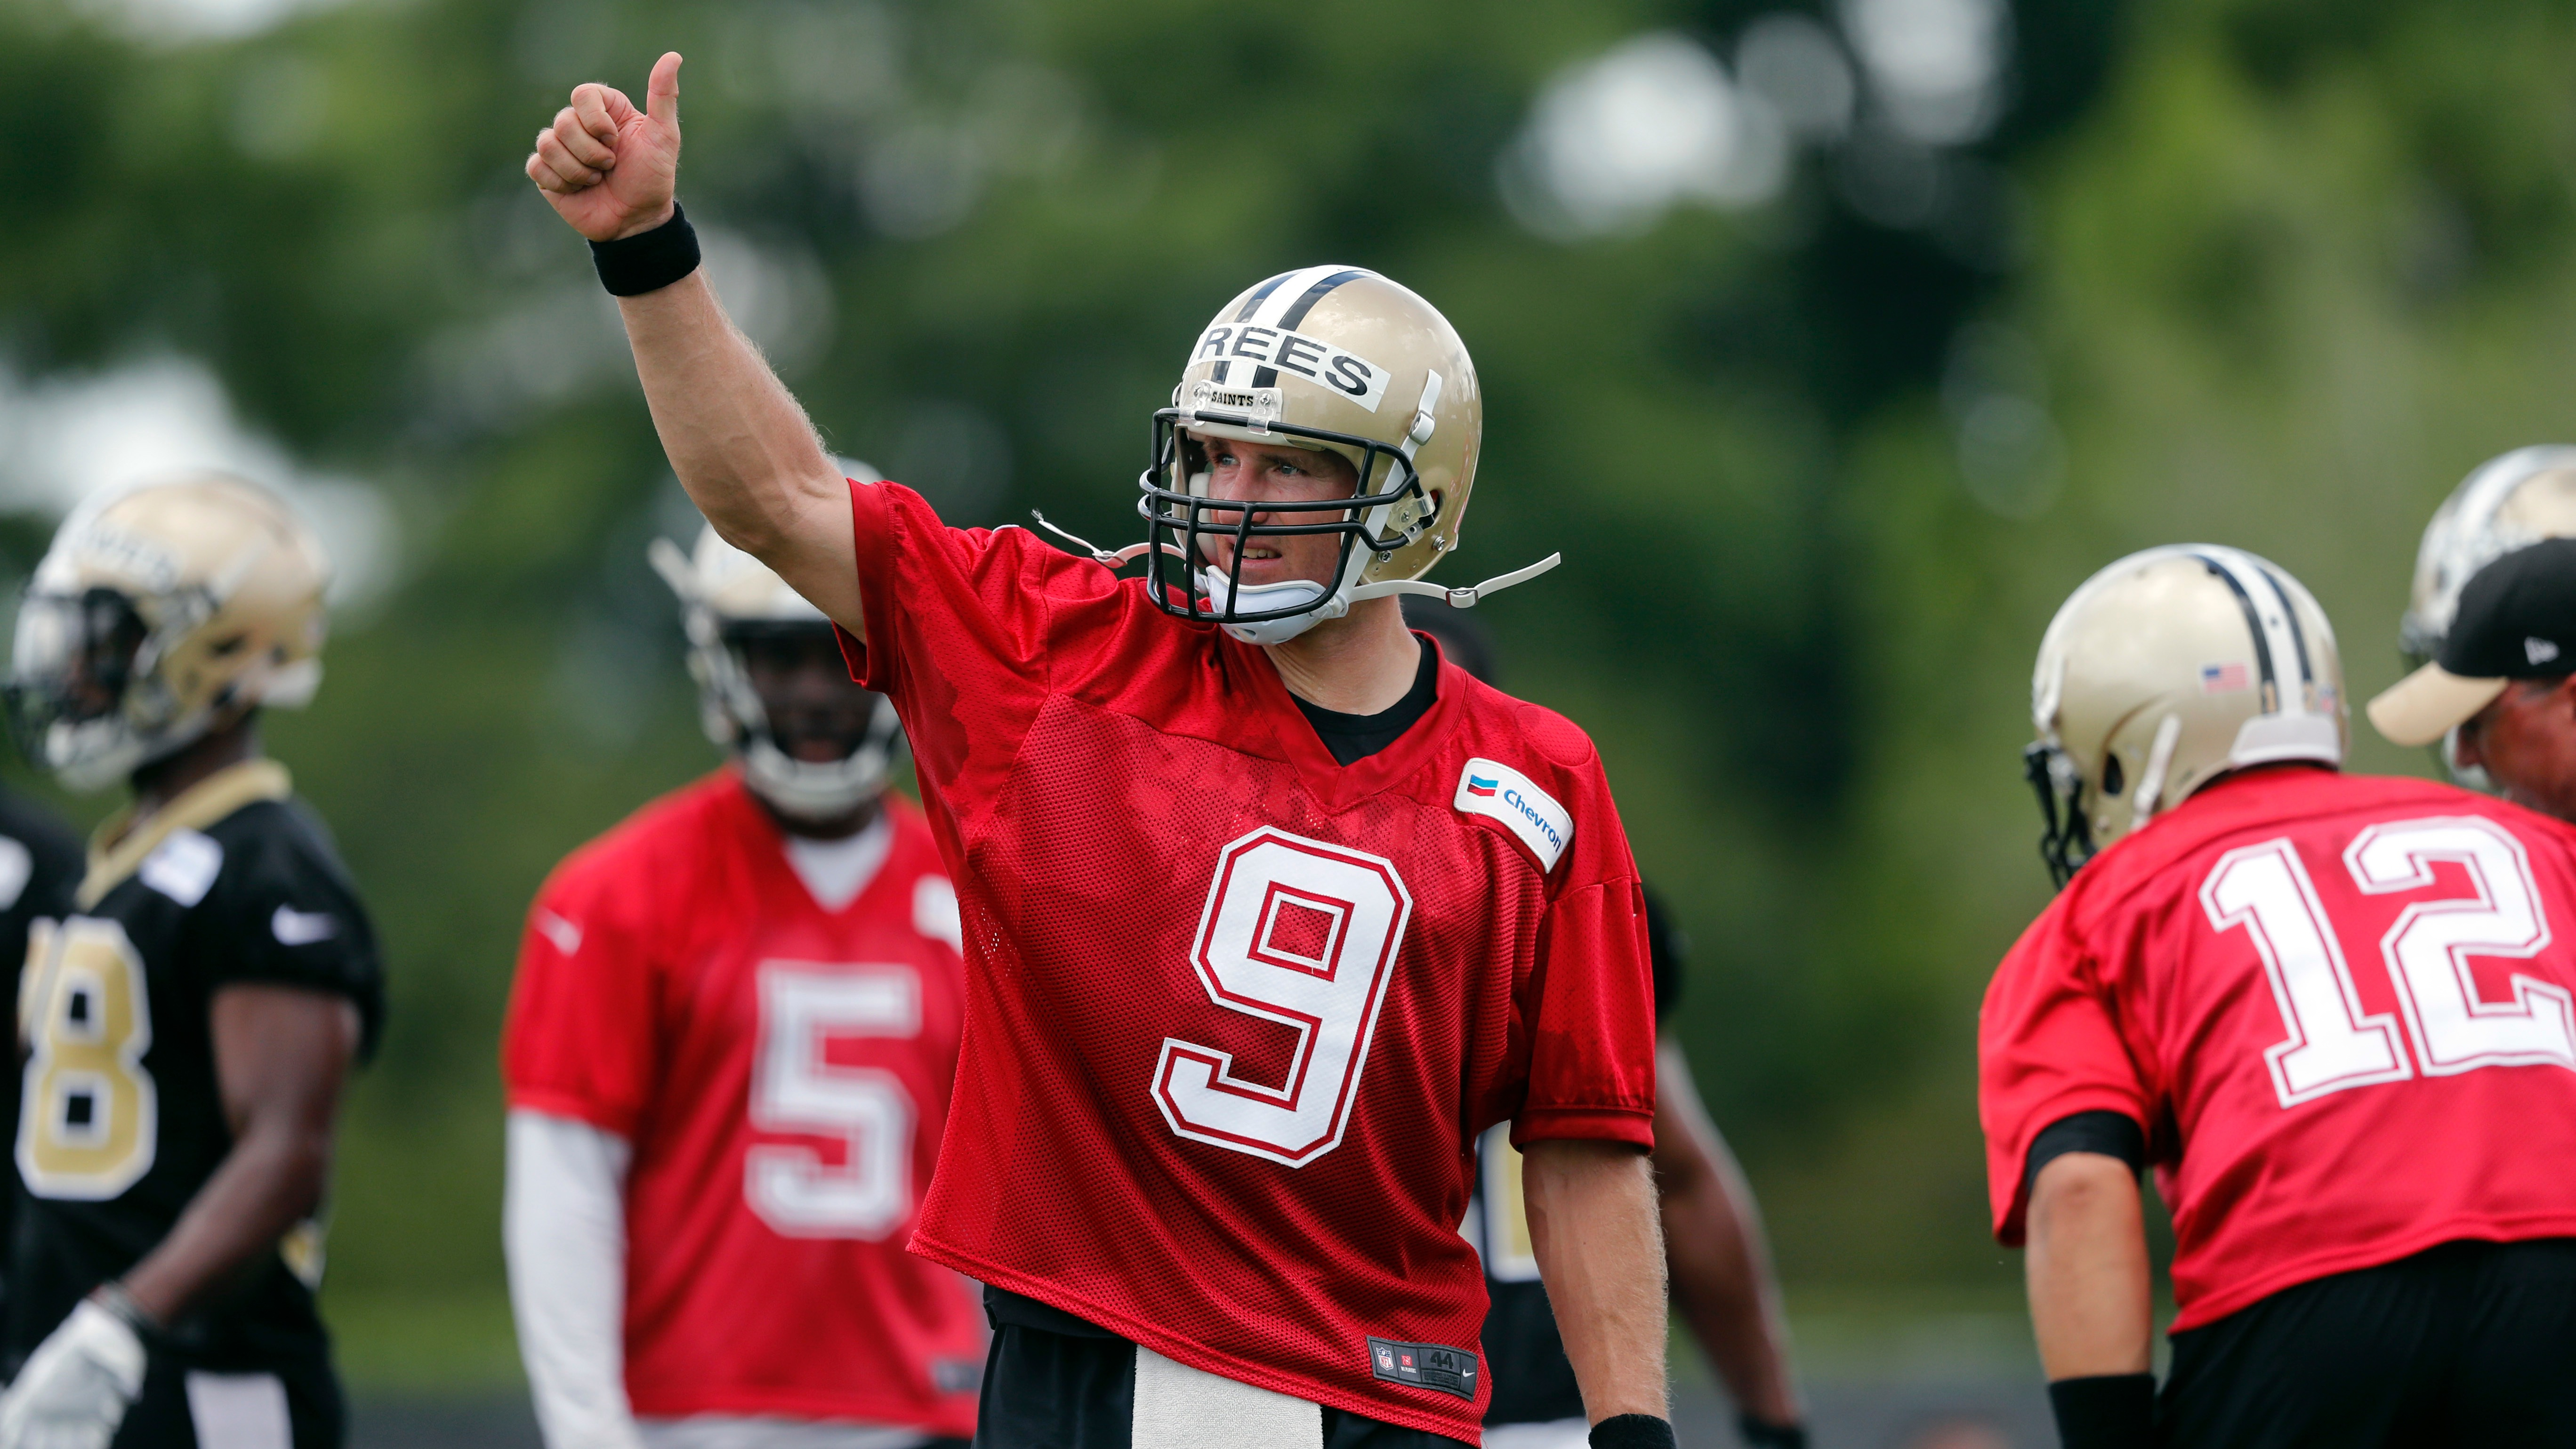 e723c953 NFC South betting preview: Will Brees, Newton or Ryan deliver for ...